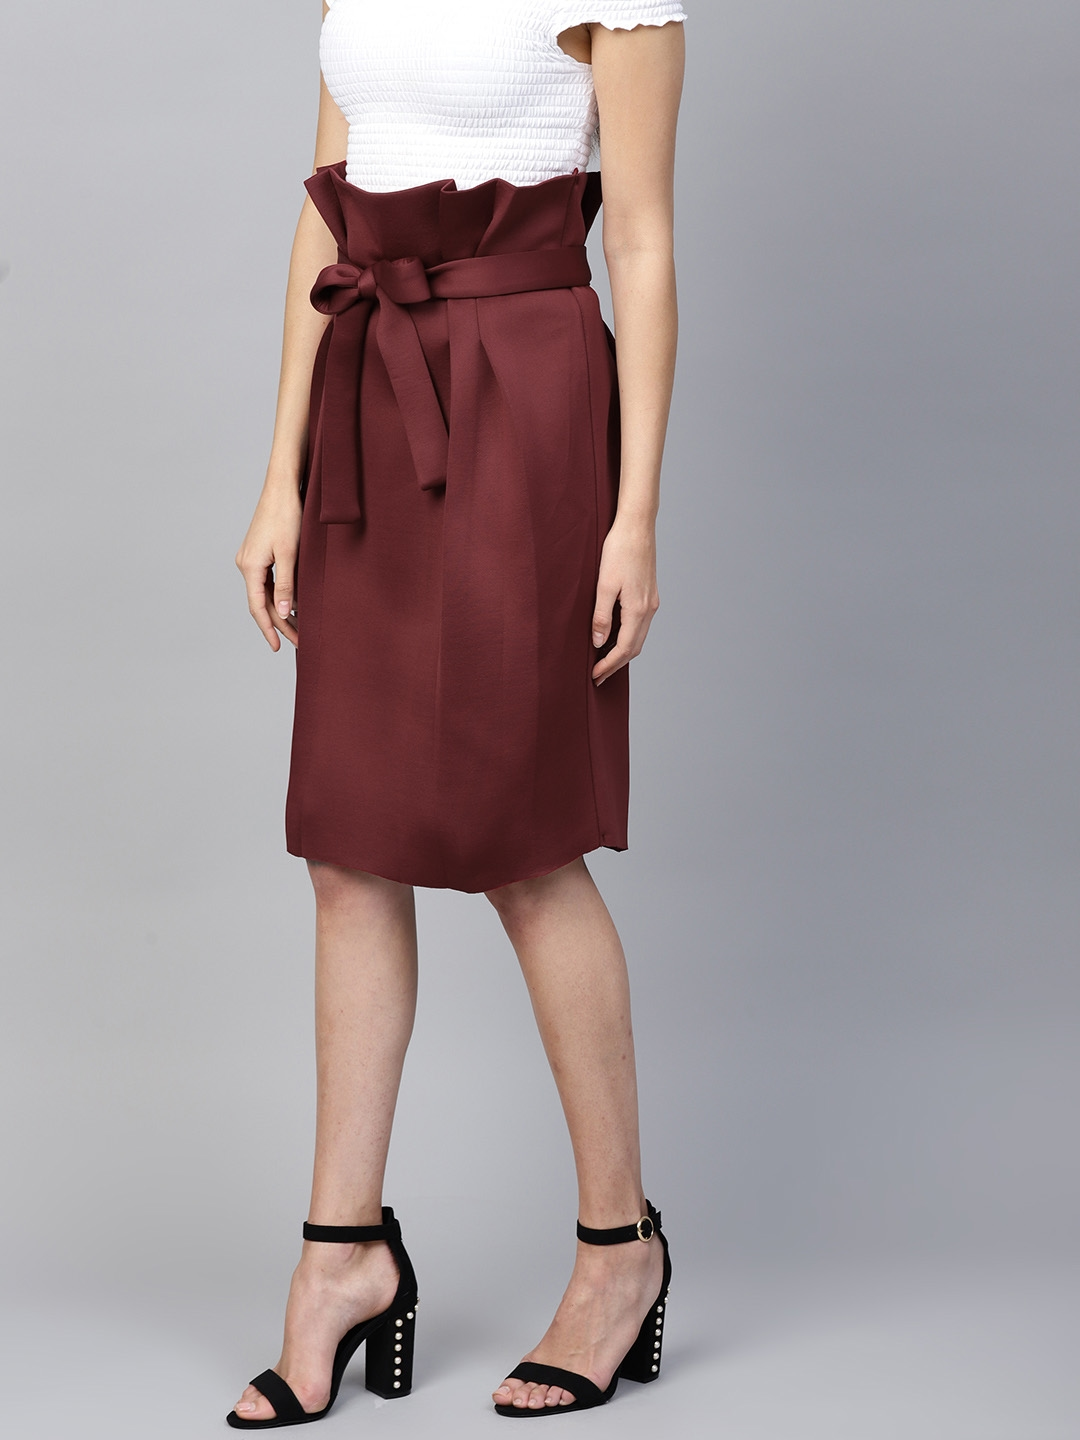 30ffa65a0 Buy Athena Women Burgundy Solid Pleated A Line Skirt - Skirts for ...